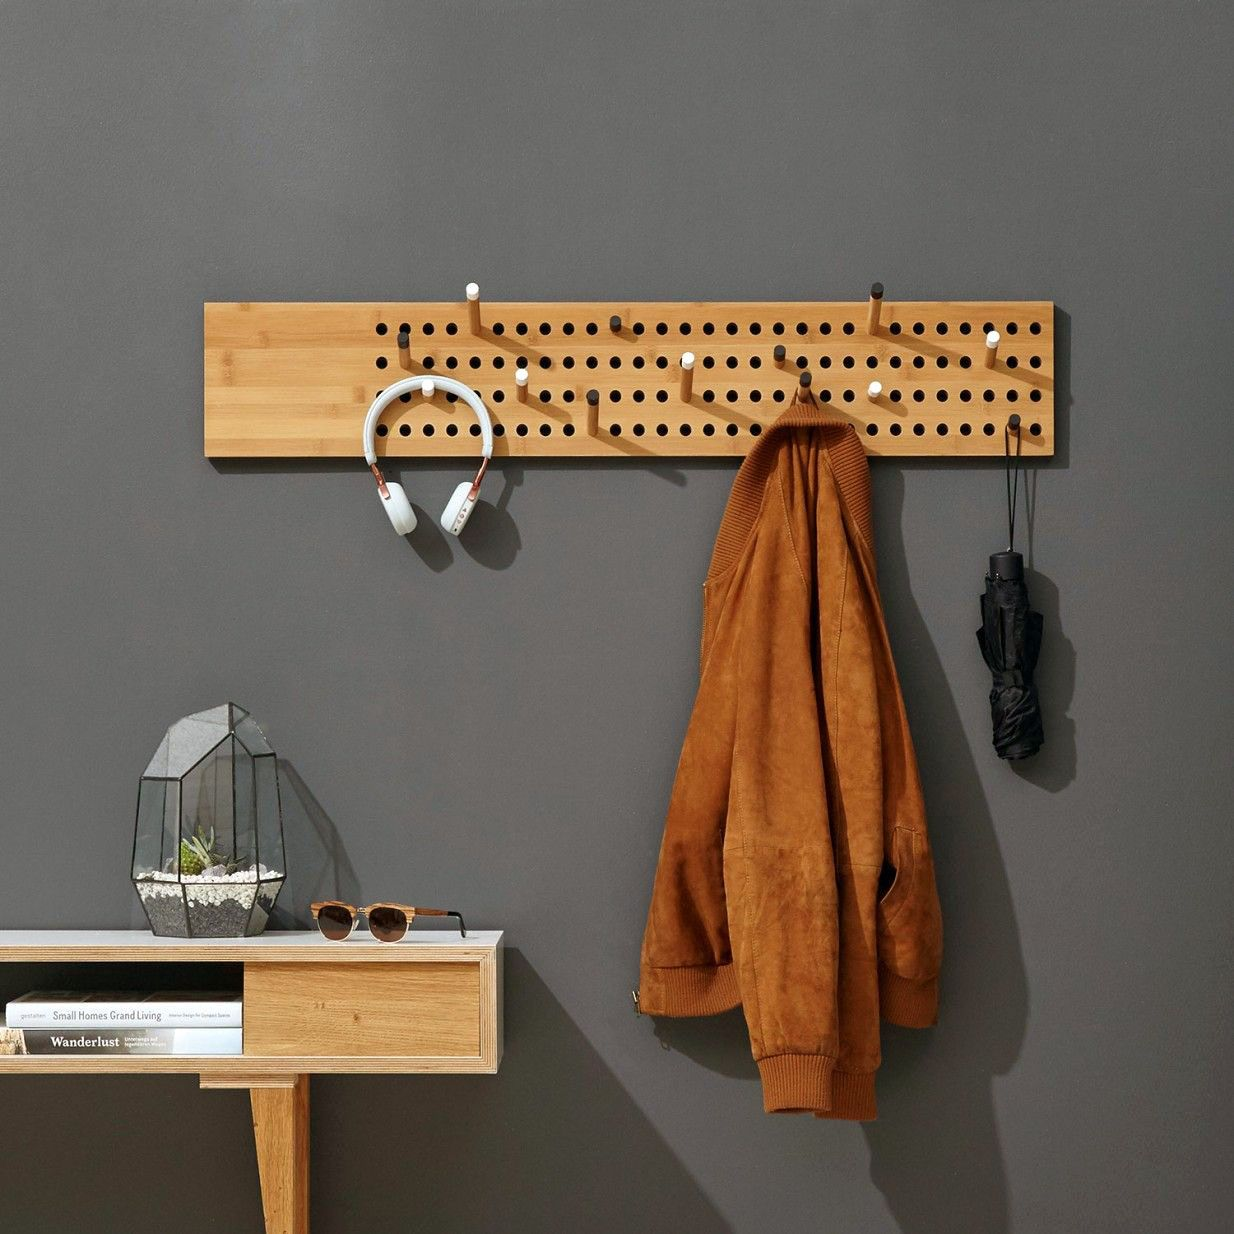 19 Easy Do It Yourself Layer Shelf Concept Suggestions